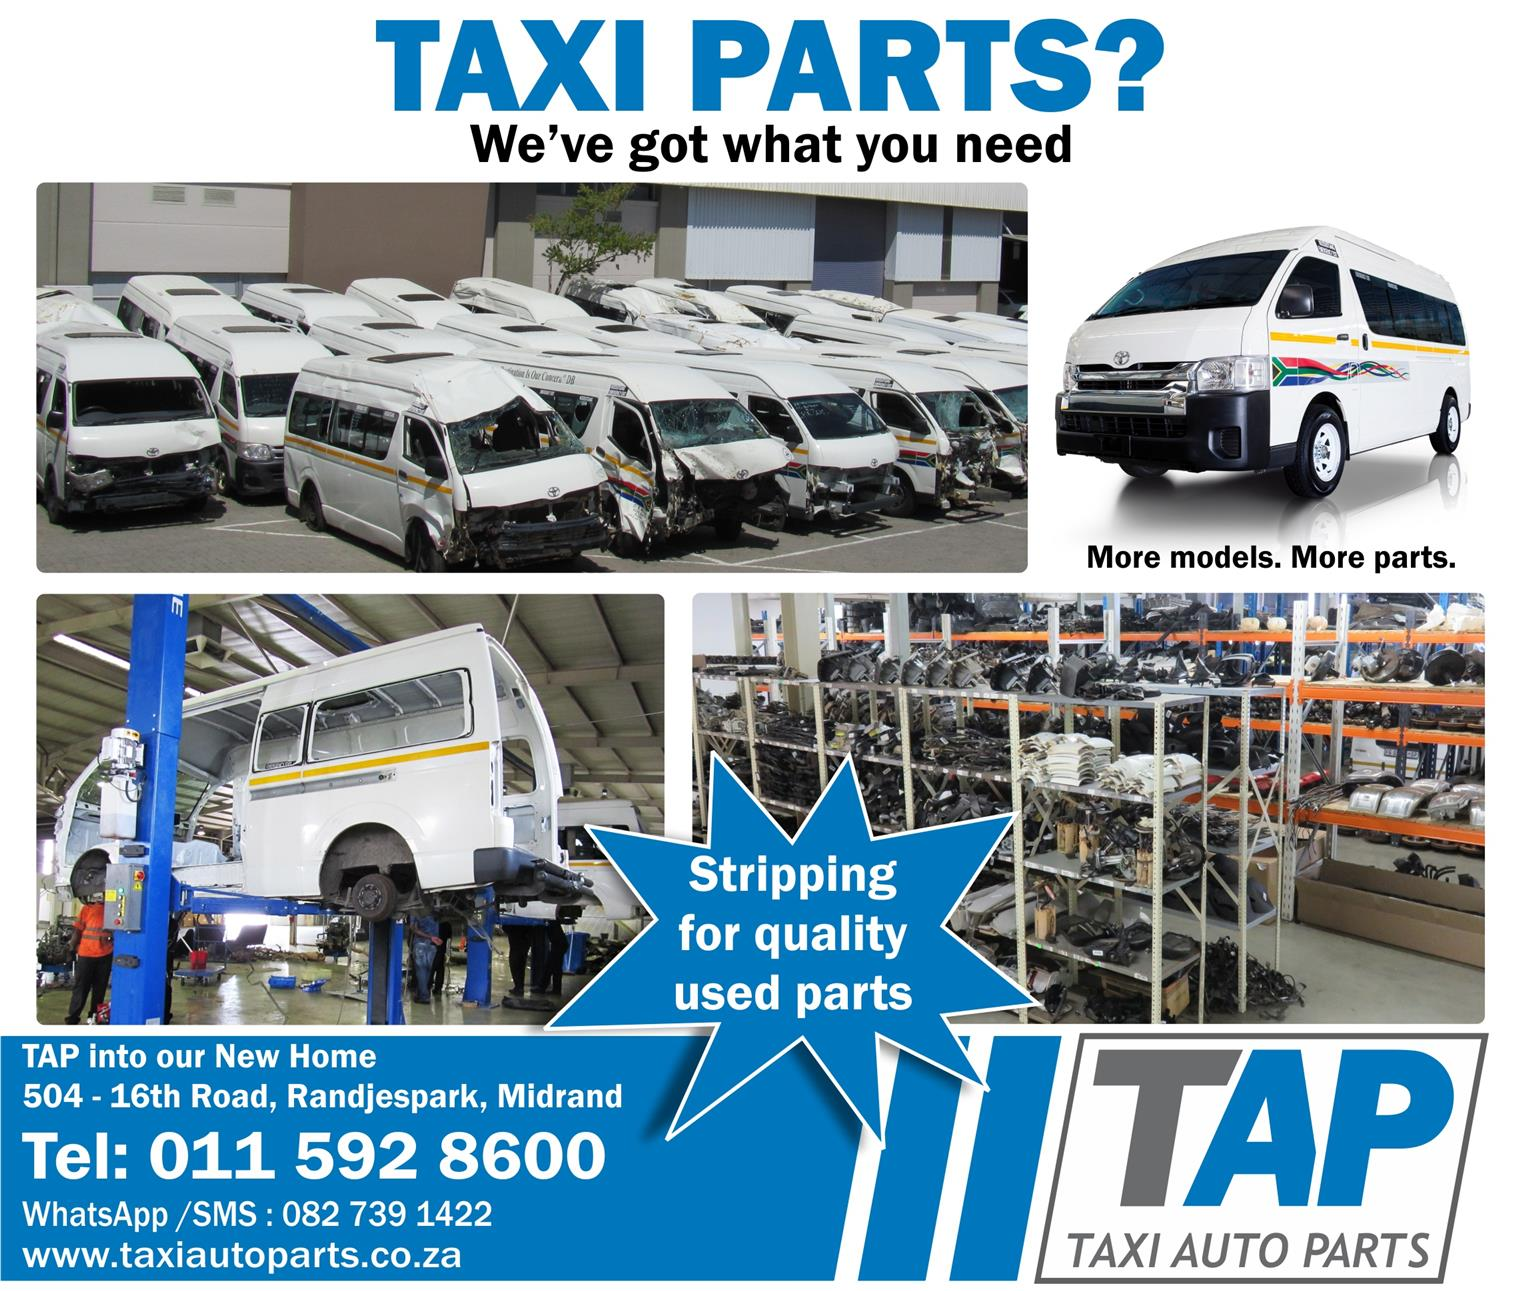 TAP into our New Home for quality used spares - Taxi Auto Parts